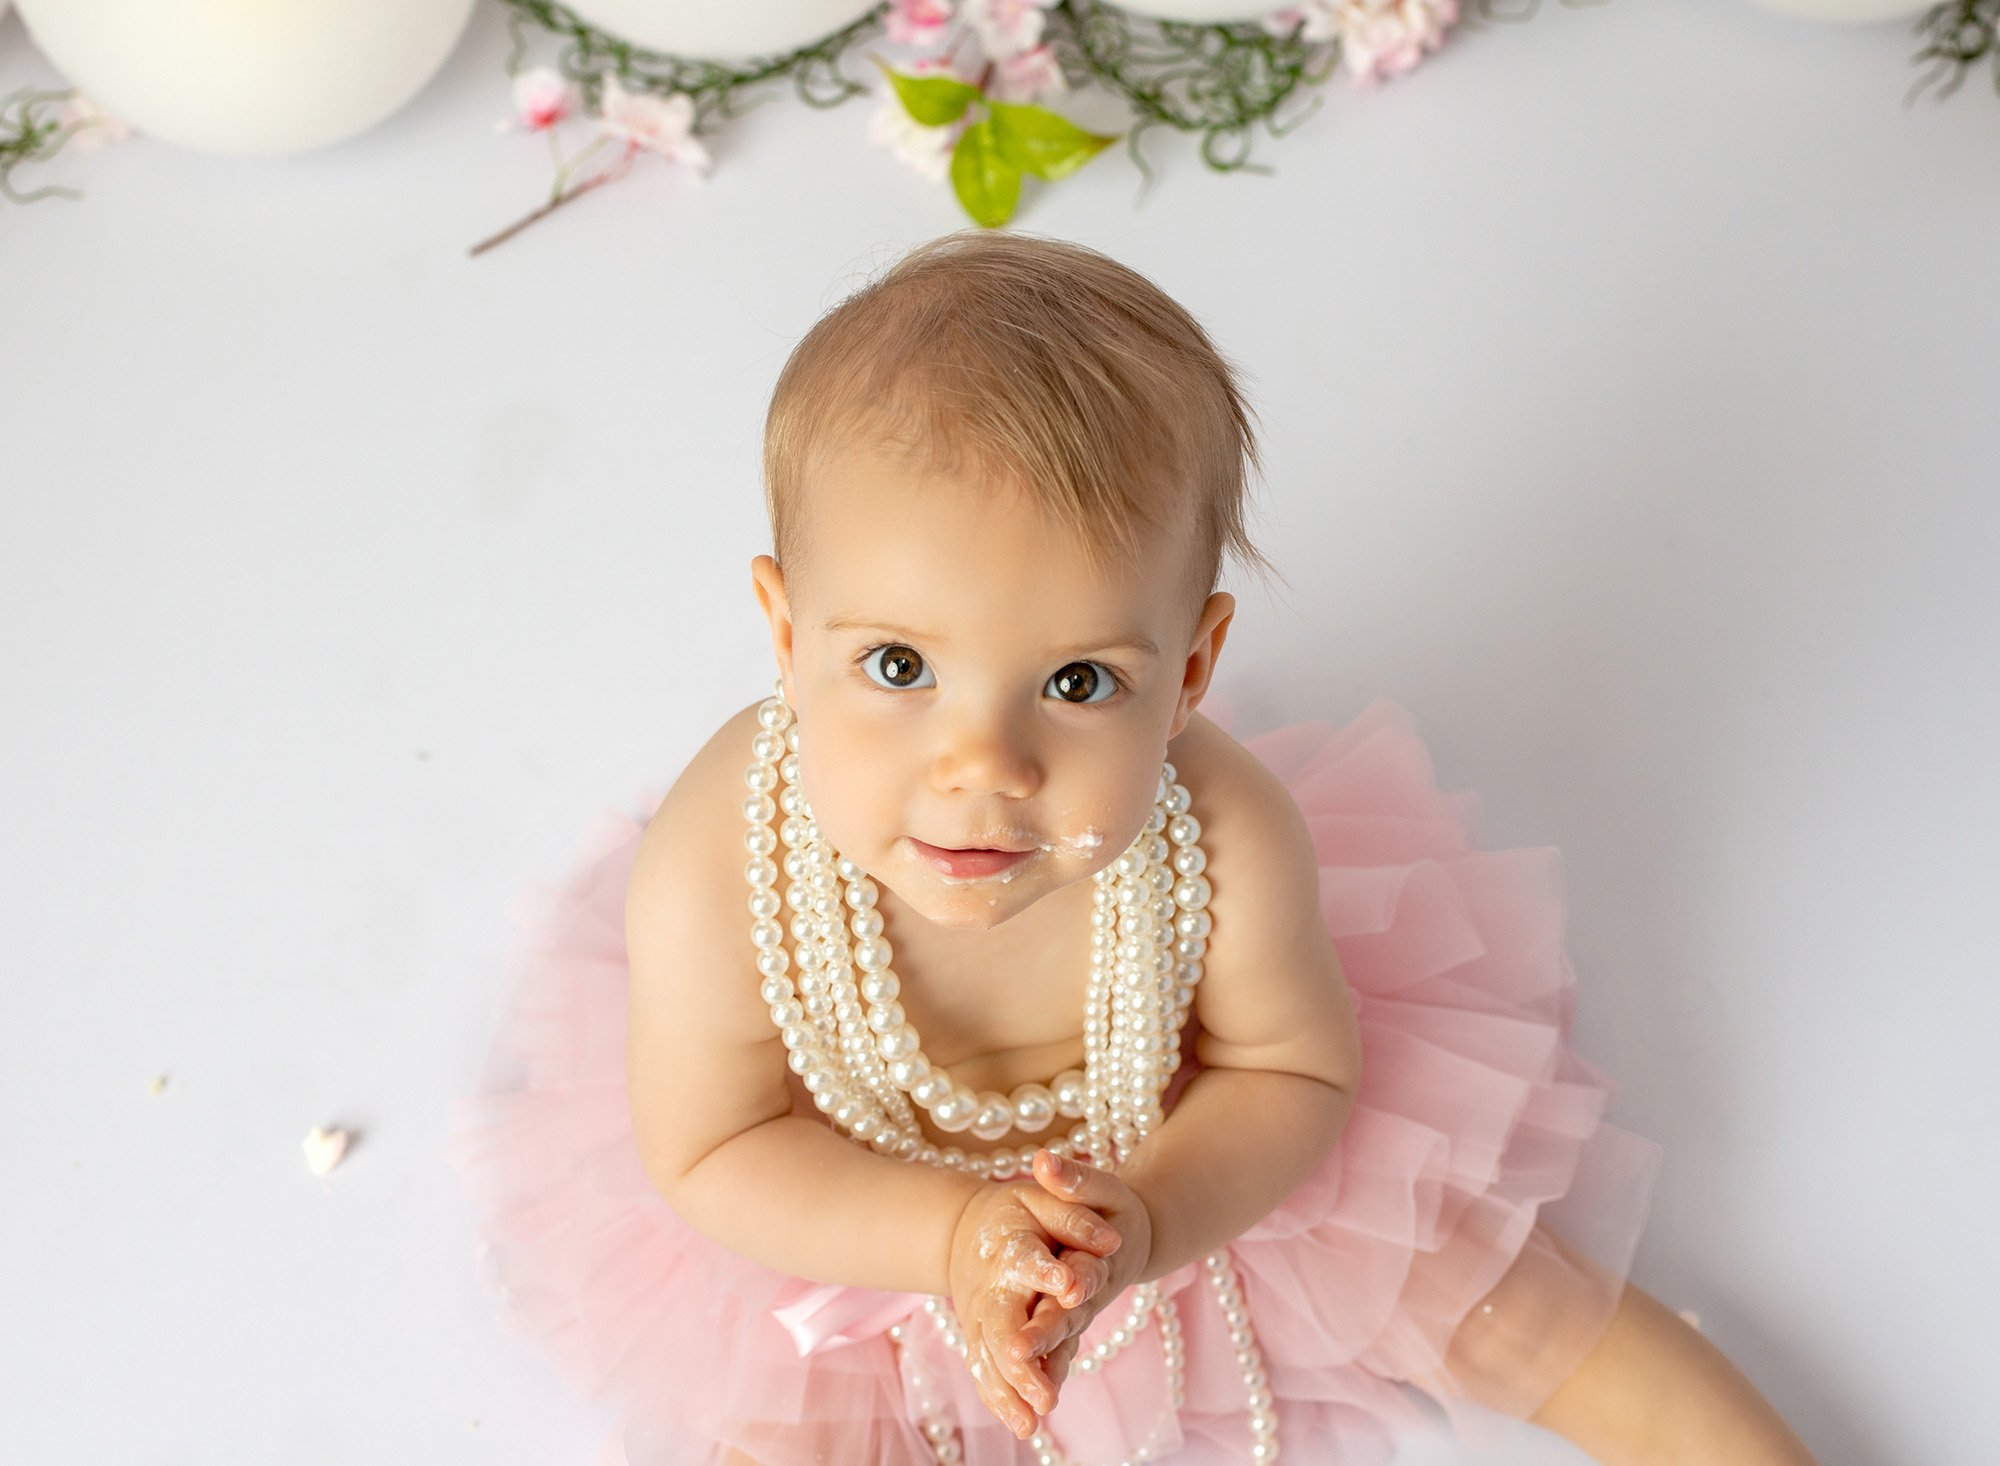 brown eyed baby girl wearing layered pearl necklace and pink tutu with cake frosting smeared on cheek and hands